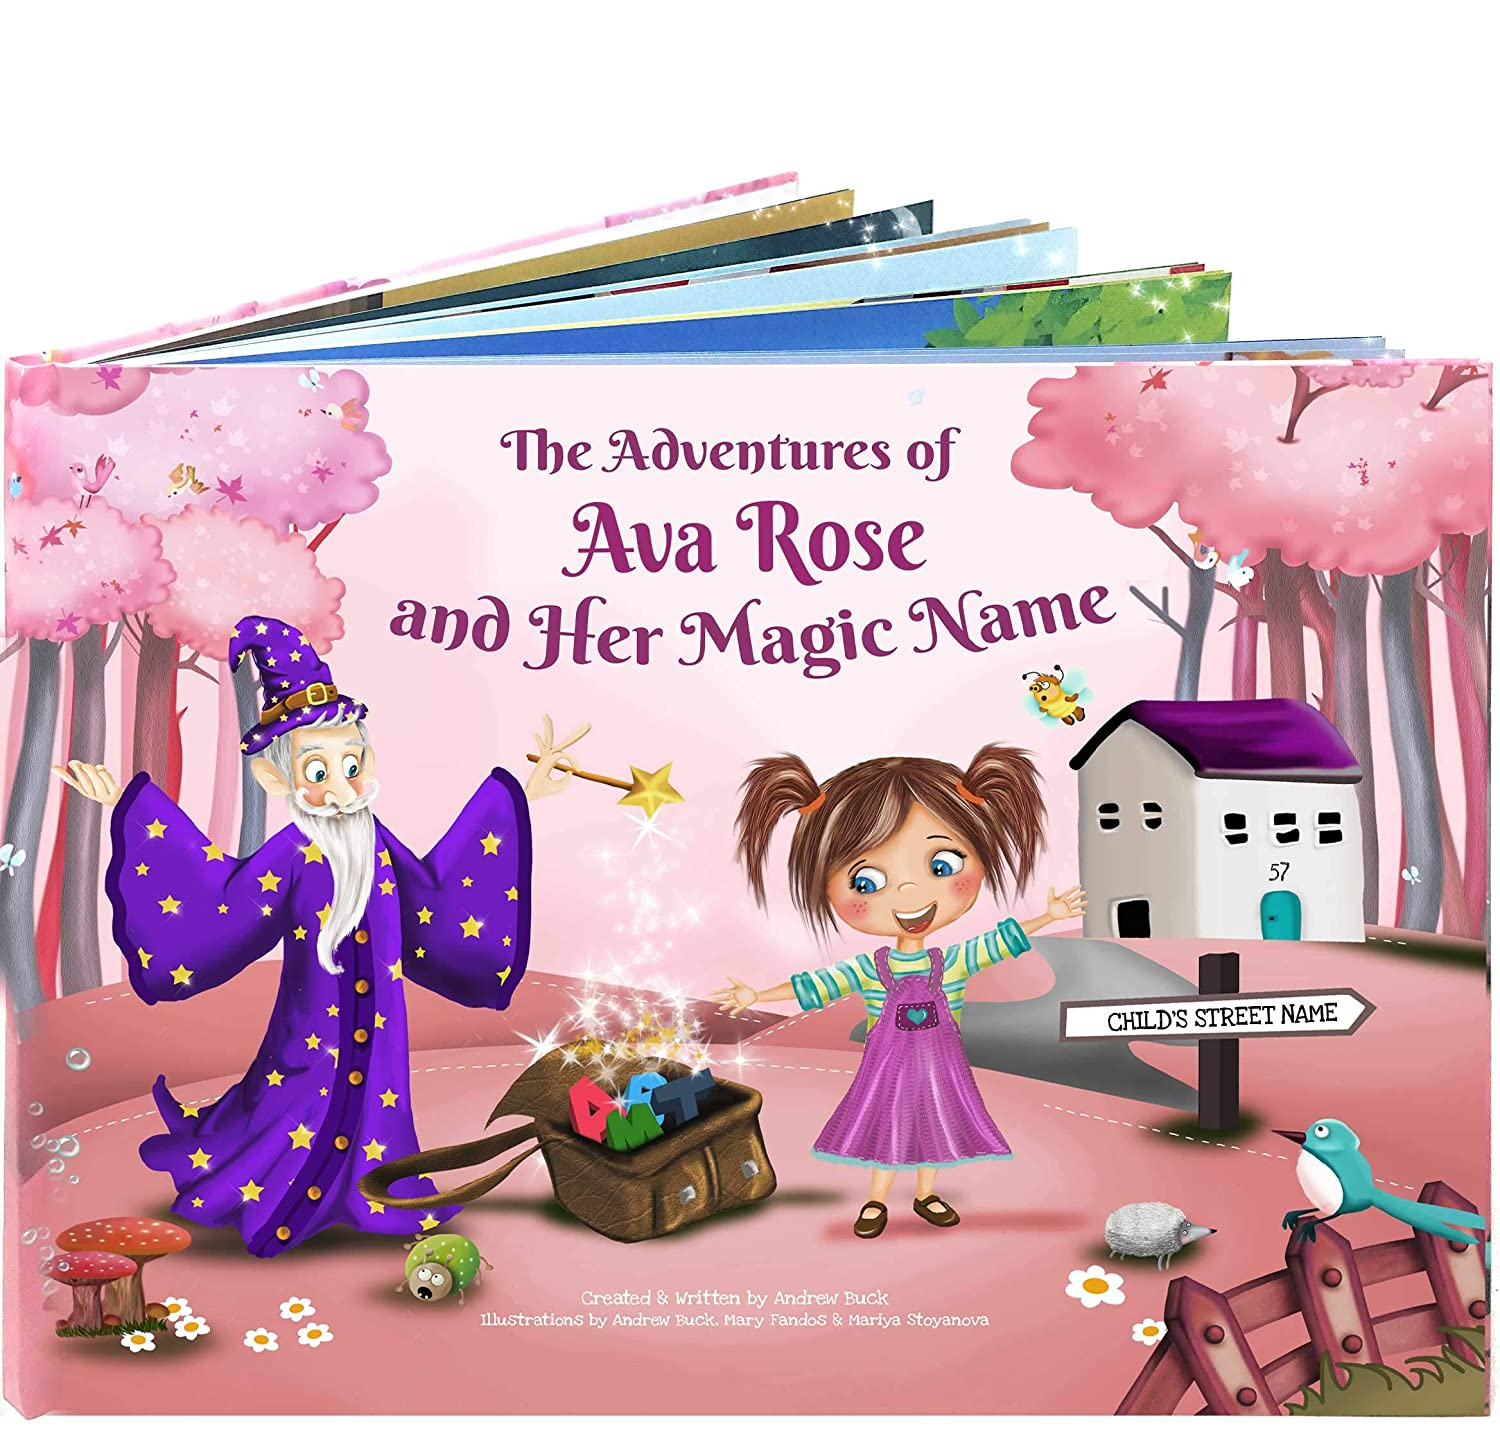 Personalised Keepsake Story Book for Baby and Children. A Unique Keepsake Story Based on the Letters of a Child' s Name. Pink for Girls, Blue for Boys.